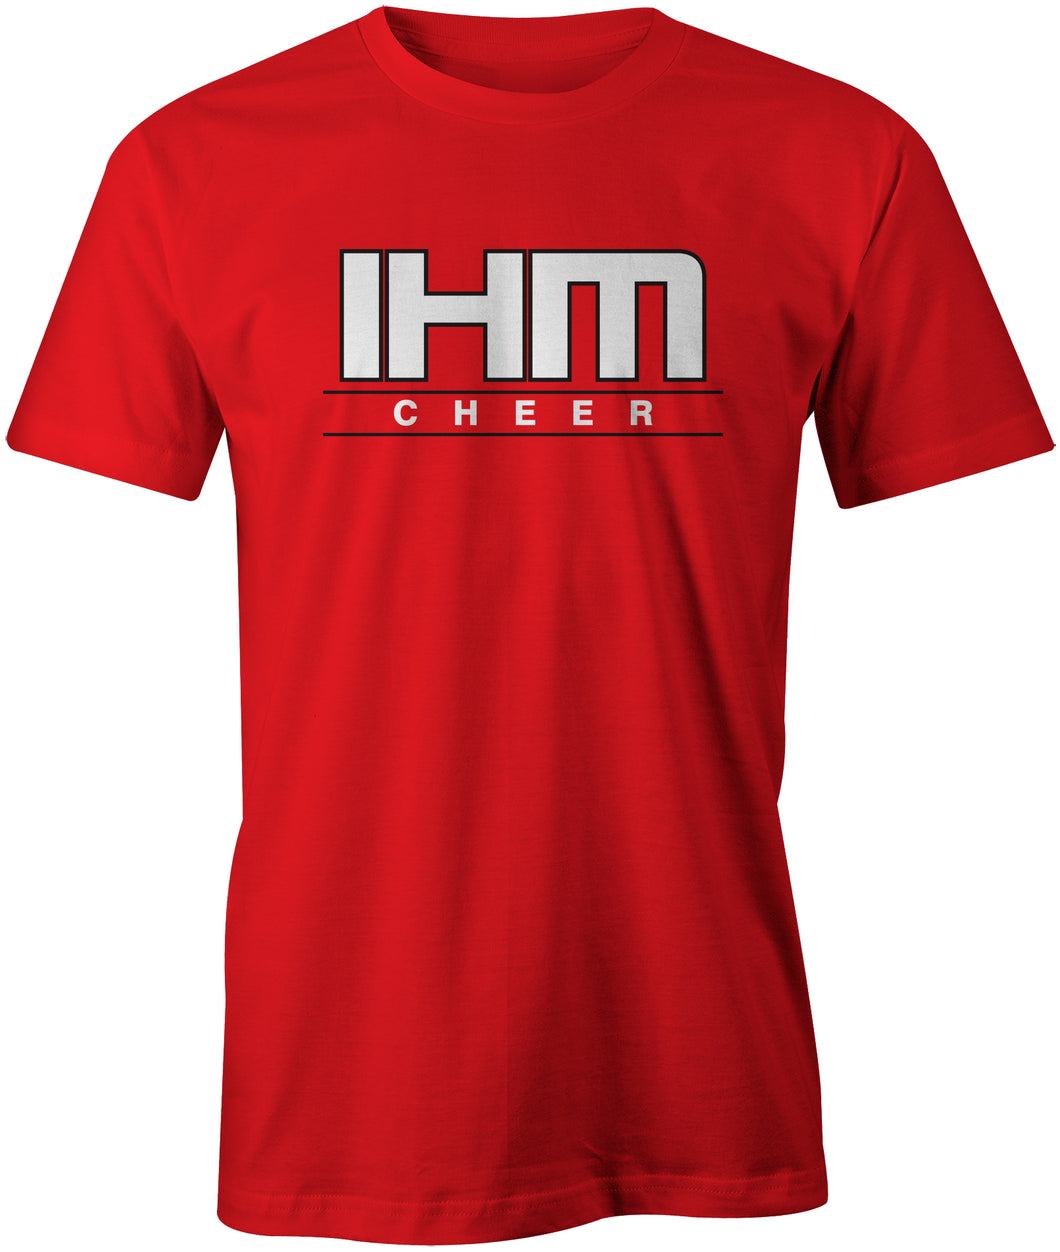 Red Cheer T-Shirt